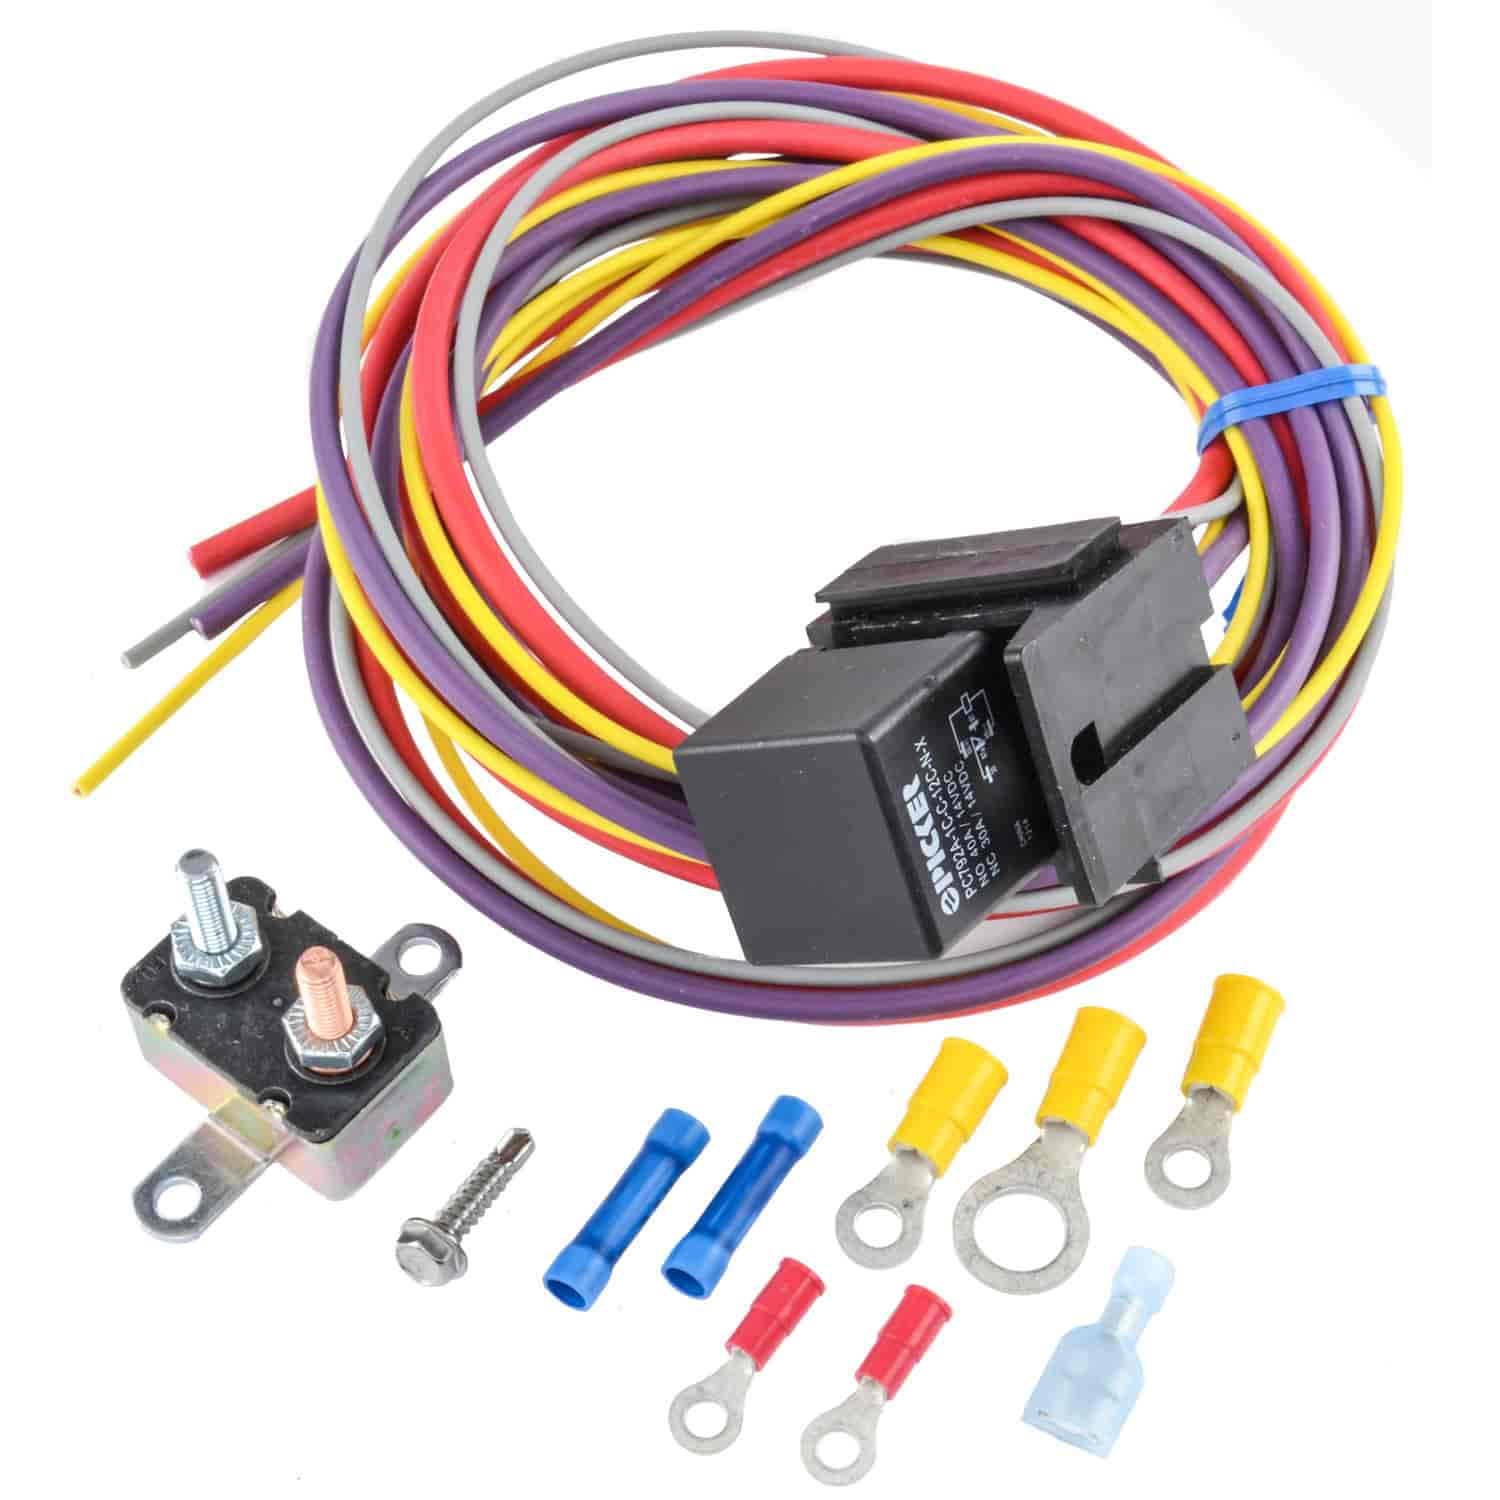 555 10559 jegs performance products 10559 manual controlled single fan VW Wiring Harness Kits at sewacar.co